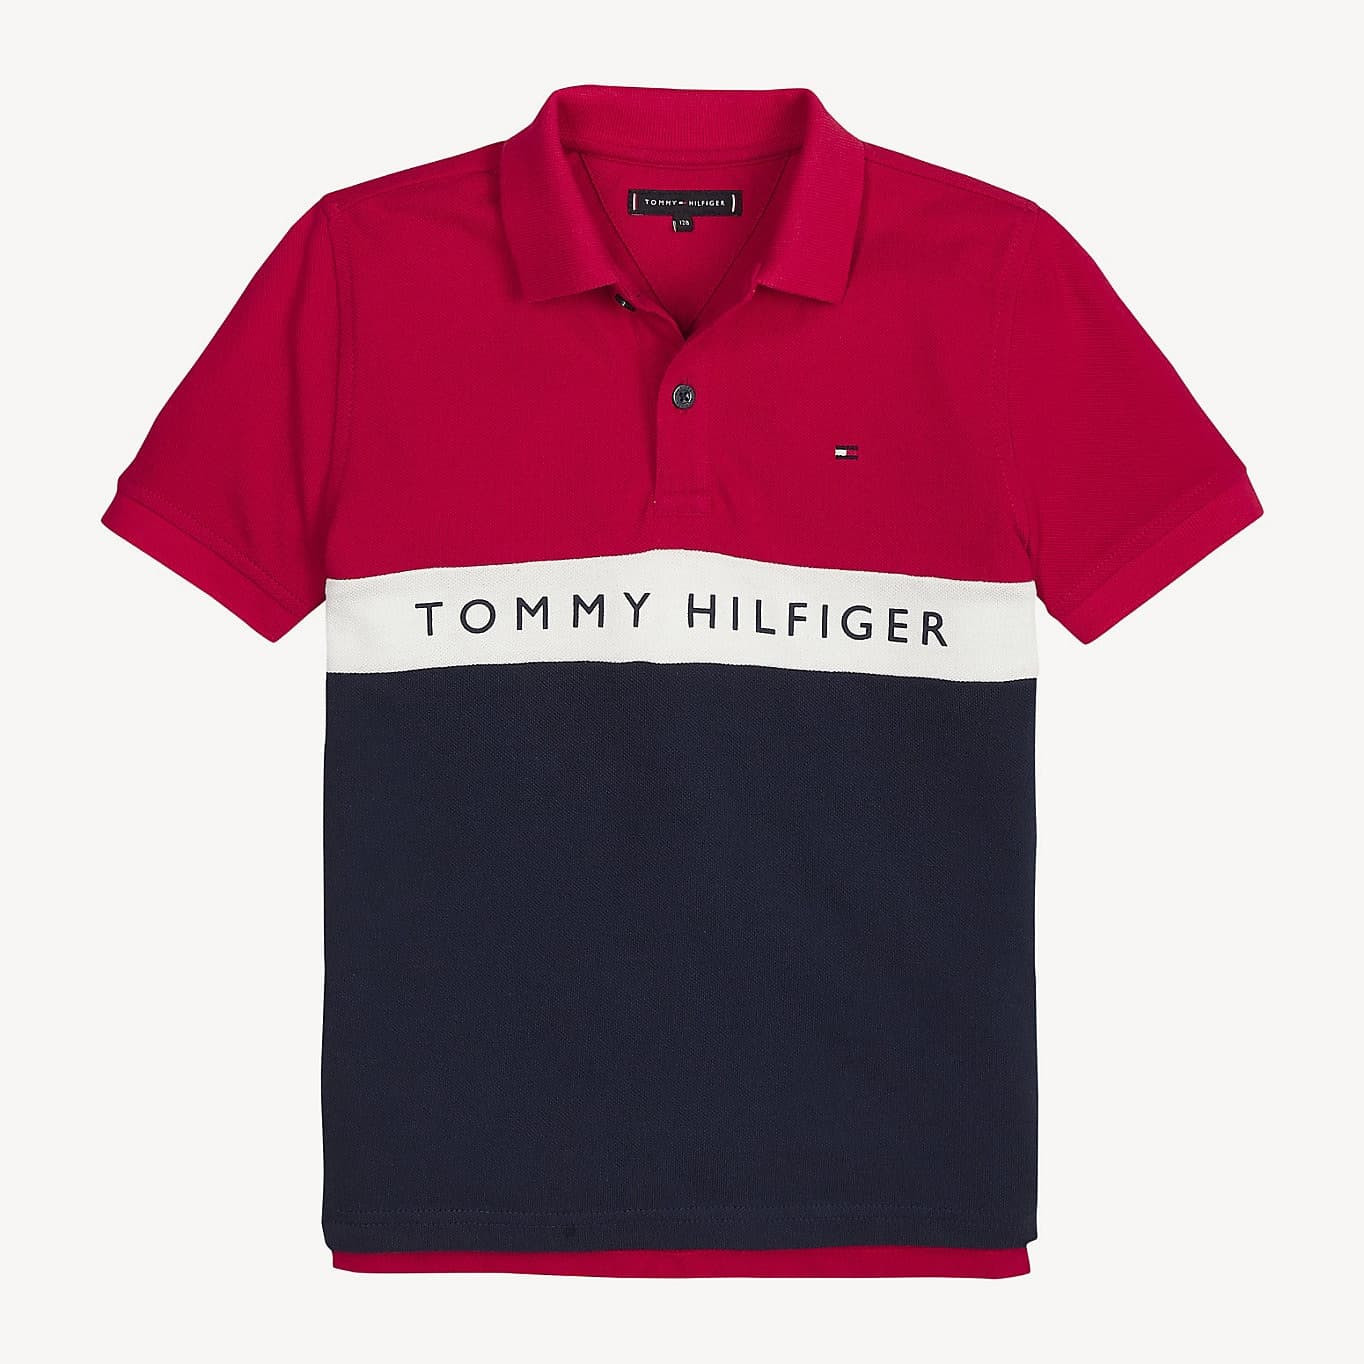 44965830f2eb Tommy Hilfiger is one of the world's leading designer lifestyle clothing  brands and is internationally recognized for celebrating the essence of  classic ...